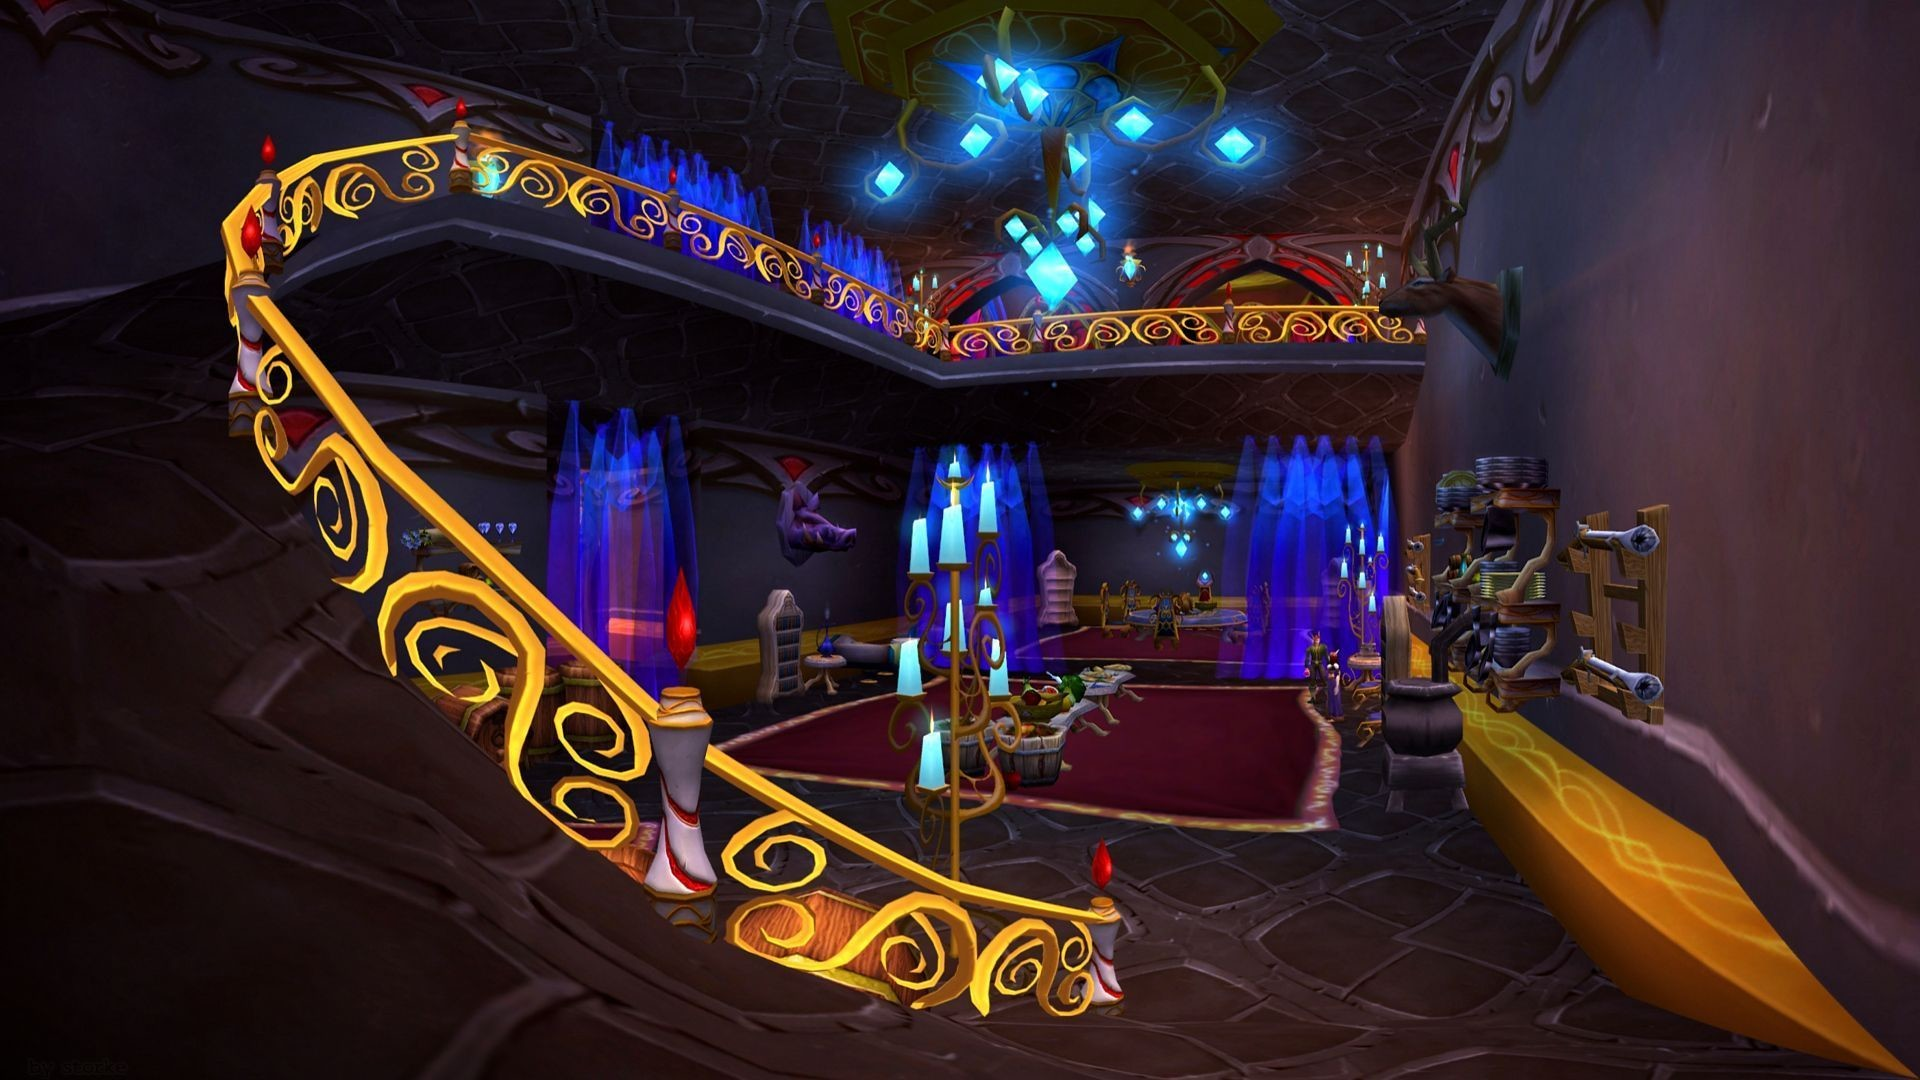 Res: 1920x1080, Wizard101-Wallpapers-Gallery-(45-Plus)-PIC-WPW50588